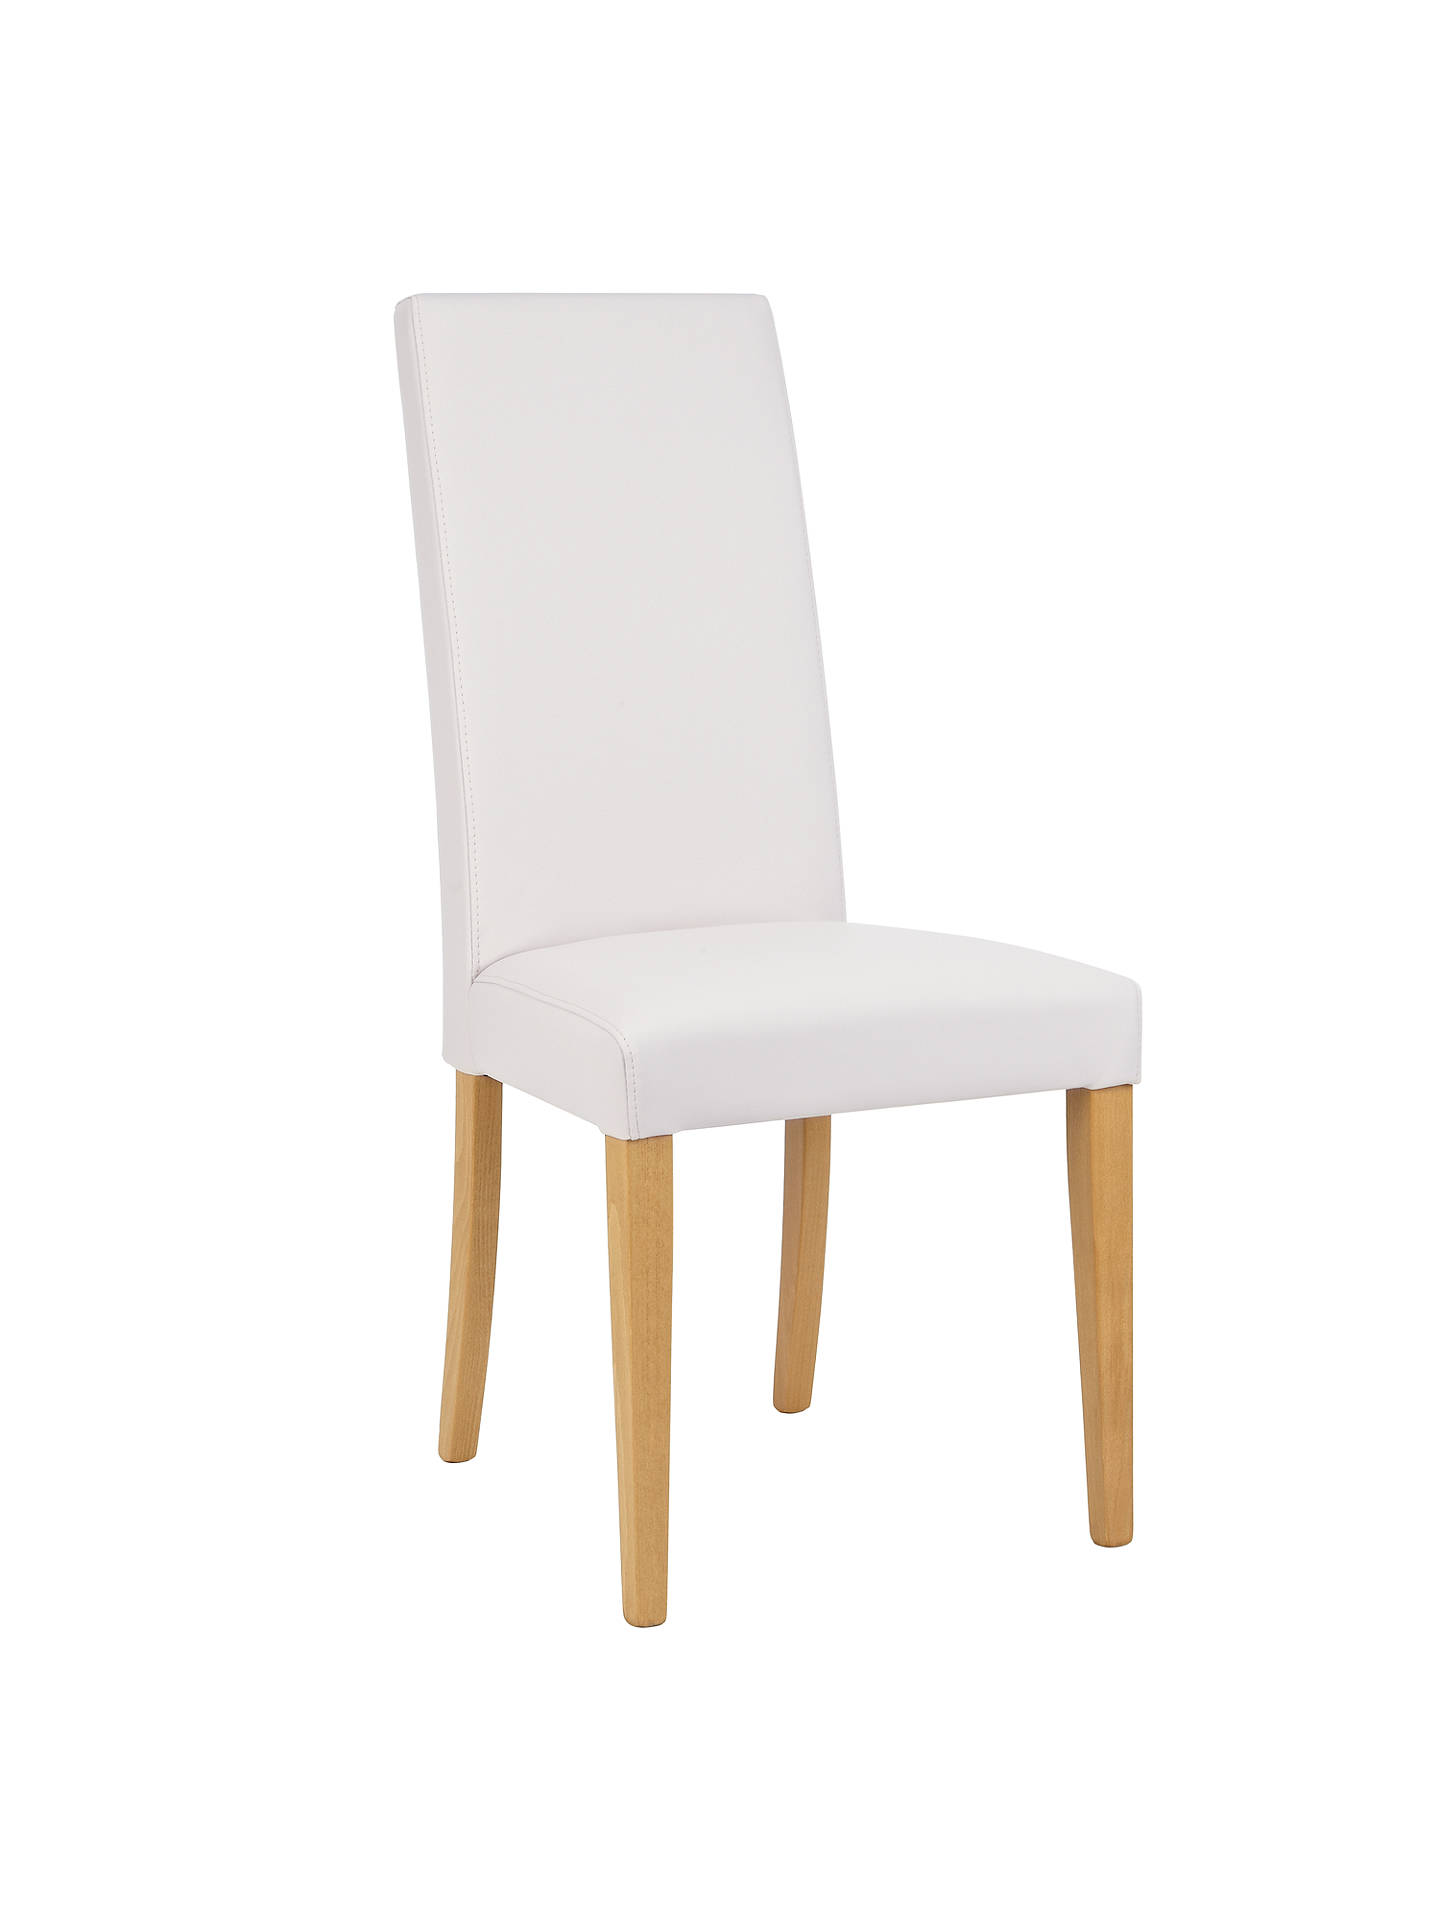 Awesome John Lewis Partners Lydia Leather Effect Dining Chair Fsc Certified Beech Chalk Gamerscity Chair Design For Home Gamerscityorg